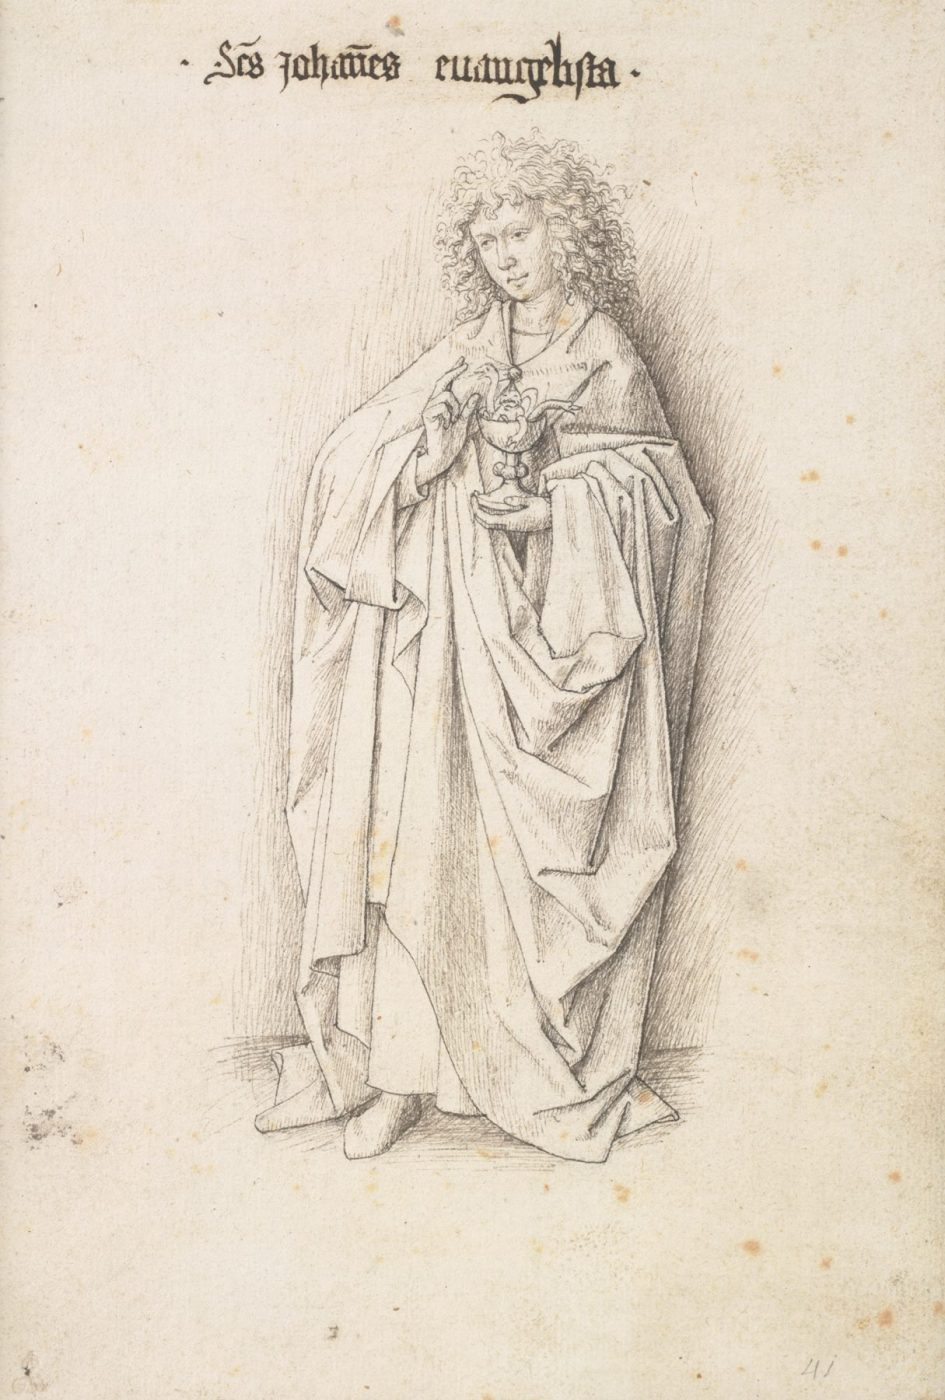 Studio of Jan van Eyck, St. John the Evangelist, from the series The Twelve Apostles, c. 1440 (Albertina, Vienna)